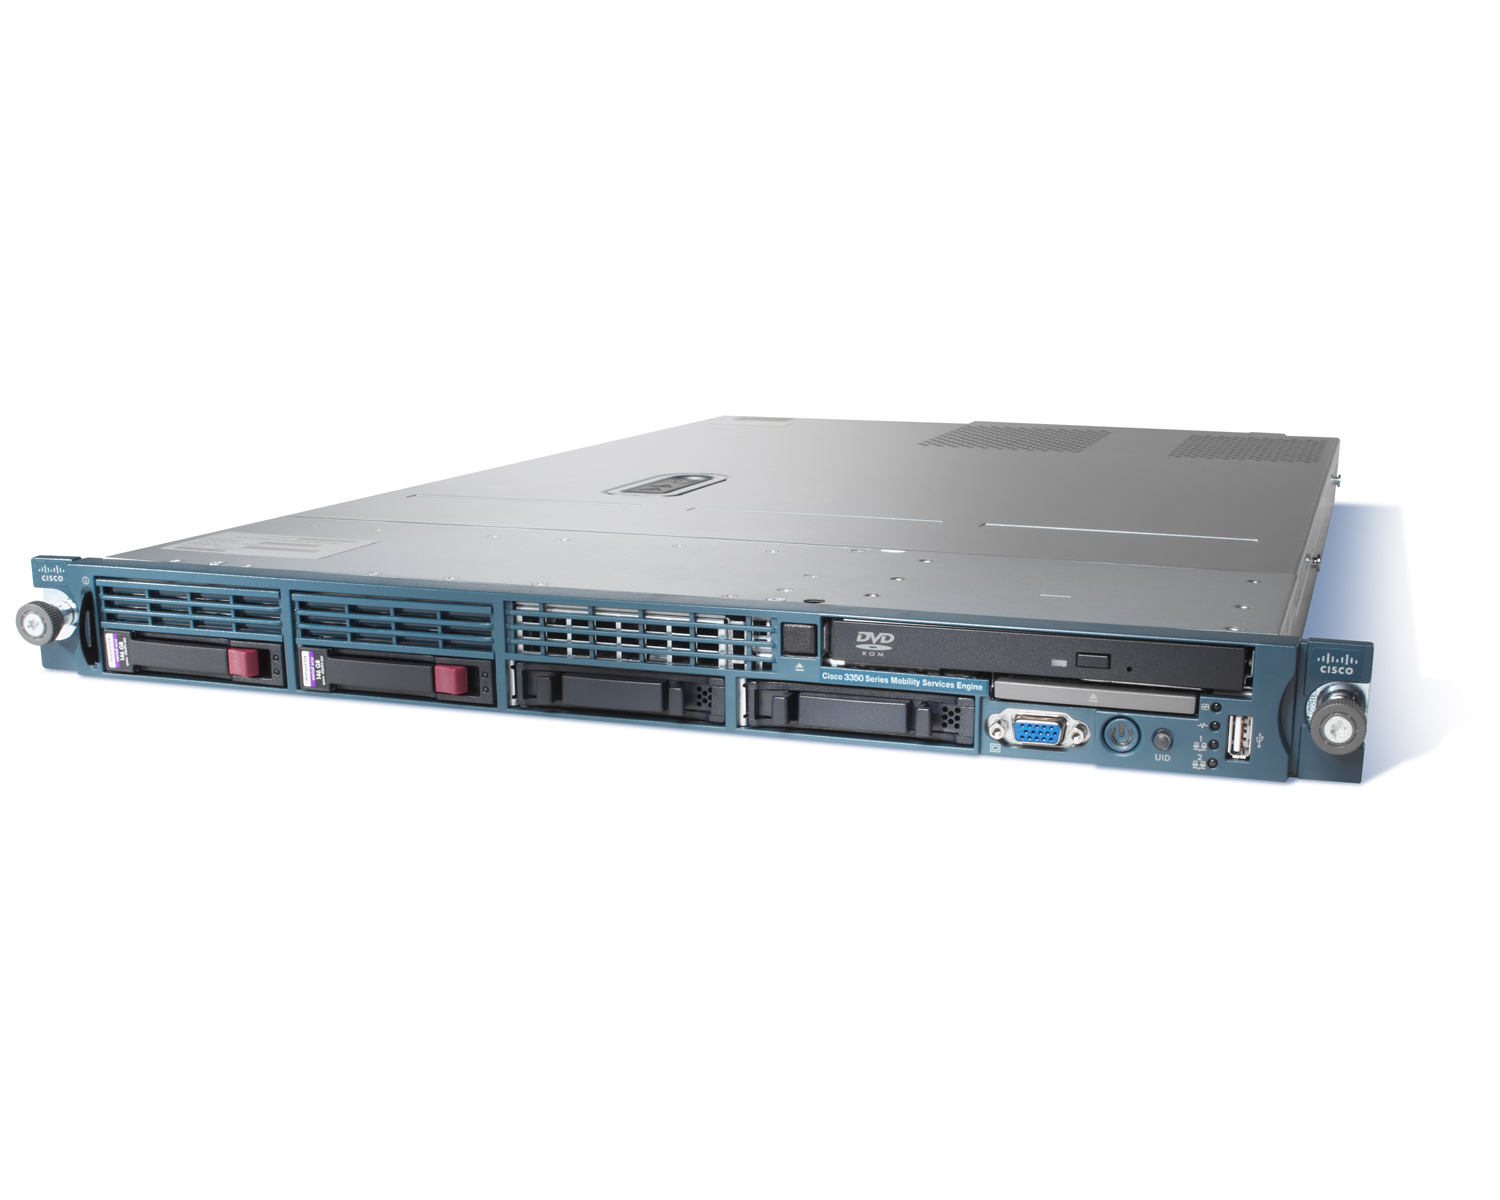 Cisco 3300 Series Mobility Services Engine pr version